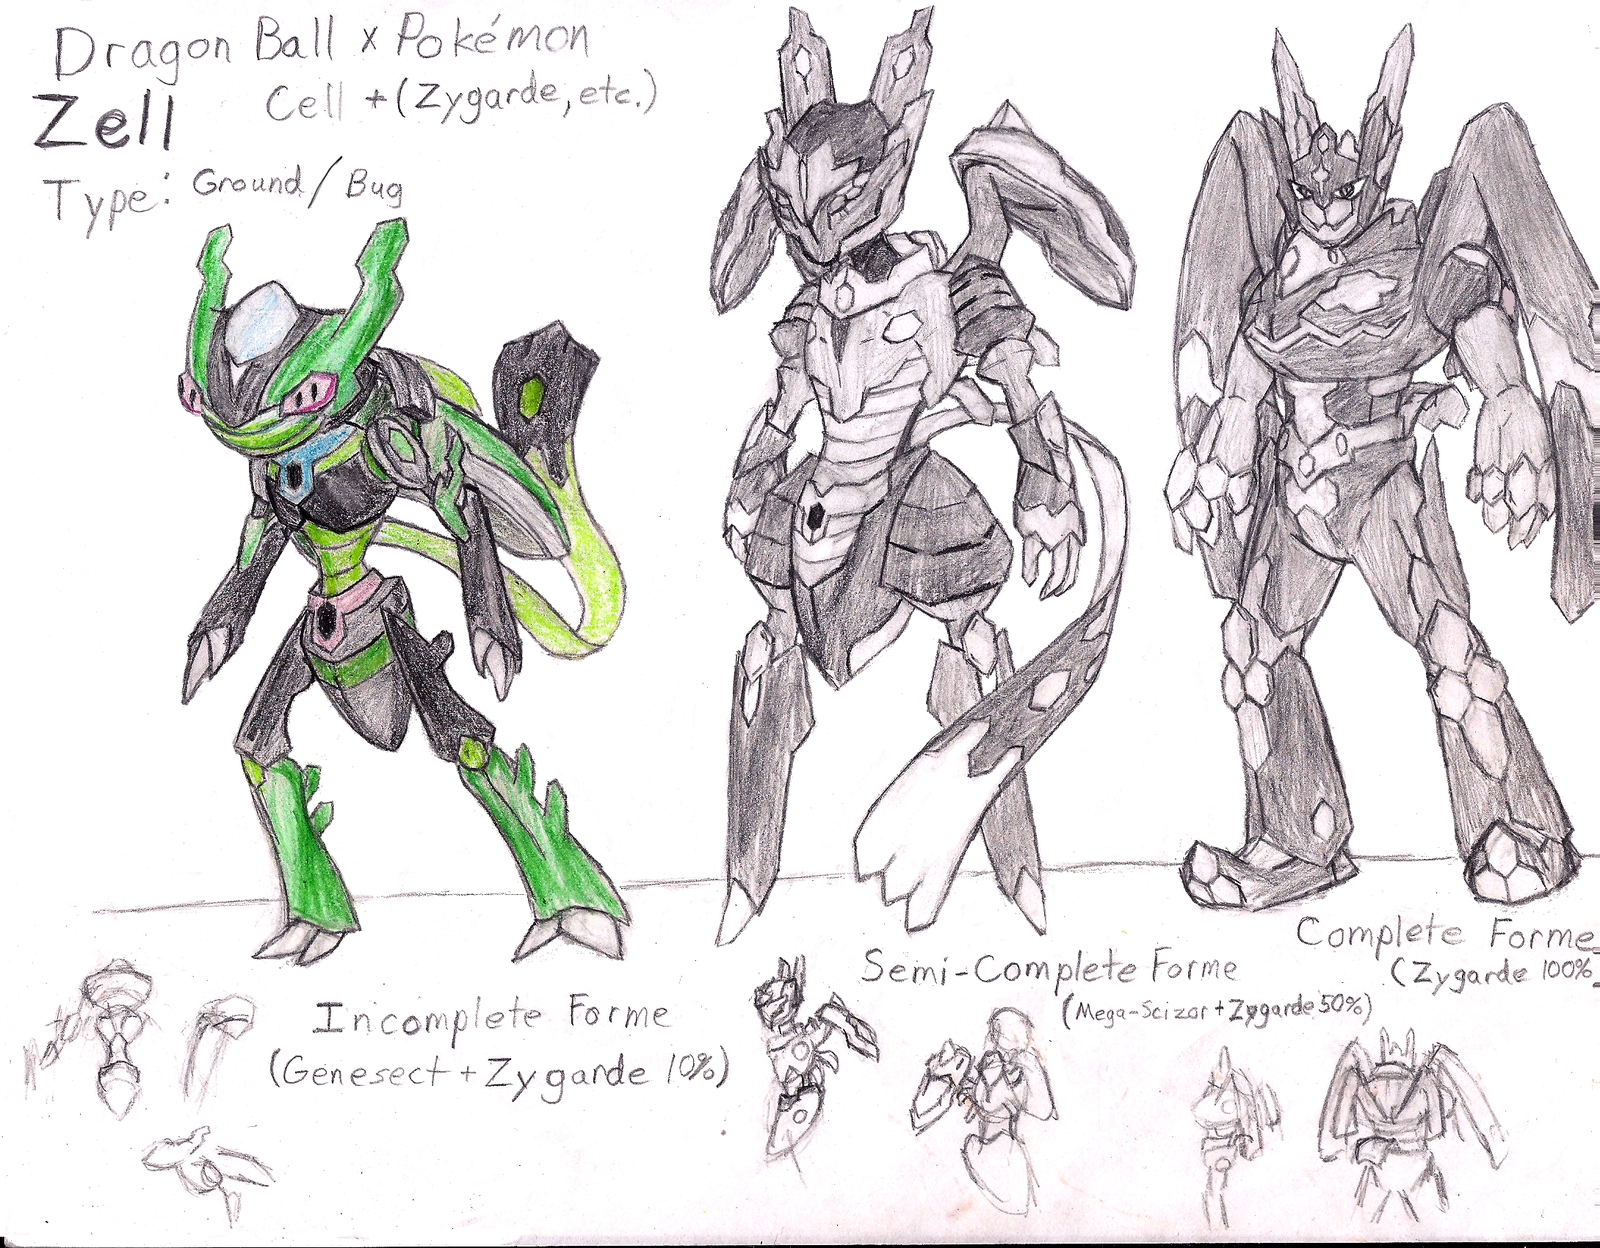 building coloring pages - Pokemon x Dragon Ball Z Cell Concept